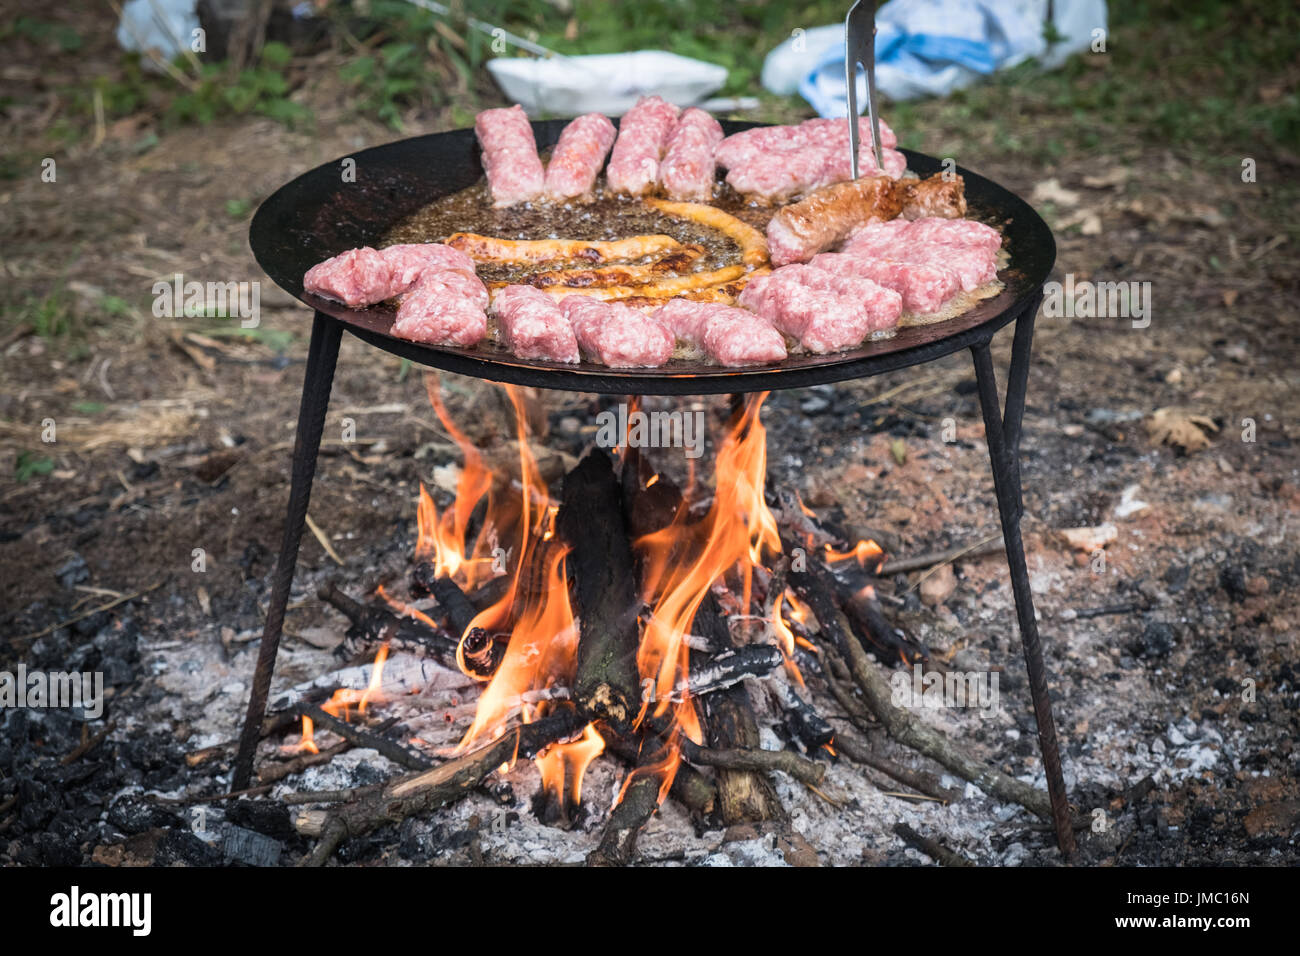 how to cook sausages on an open fire